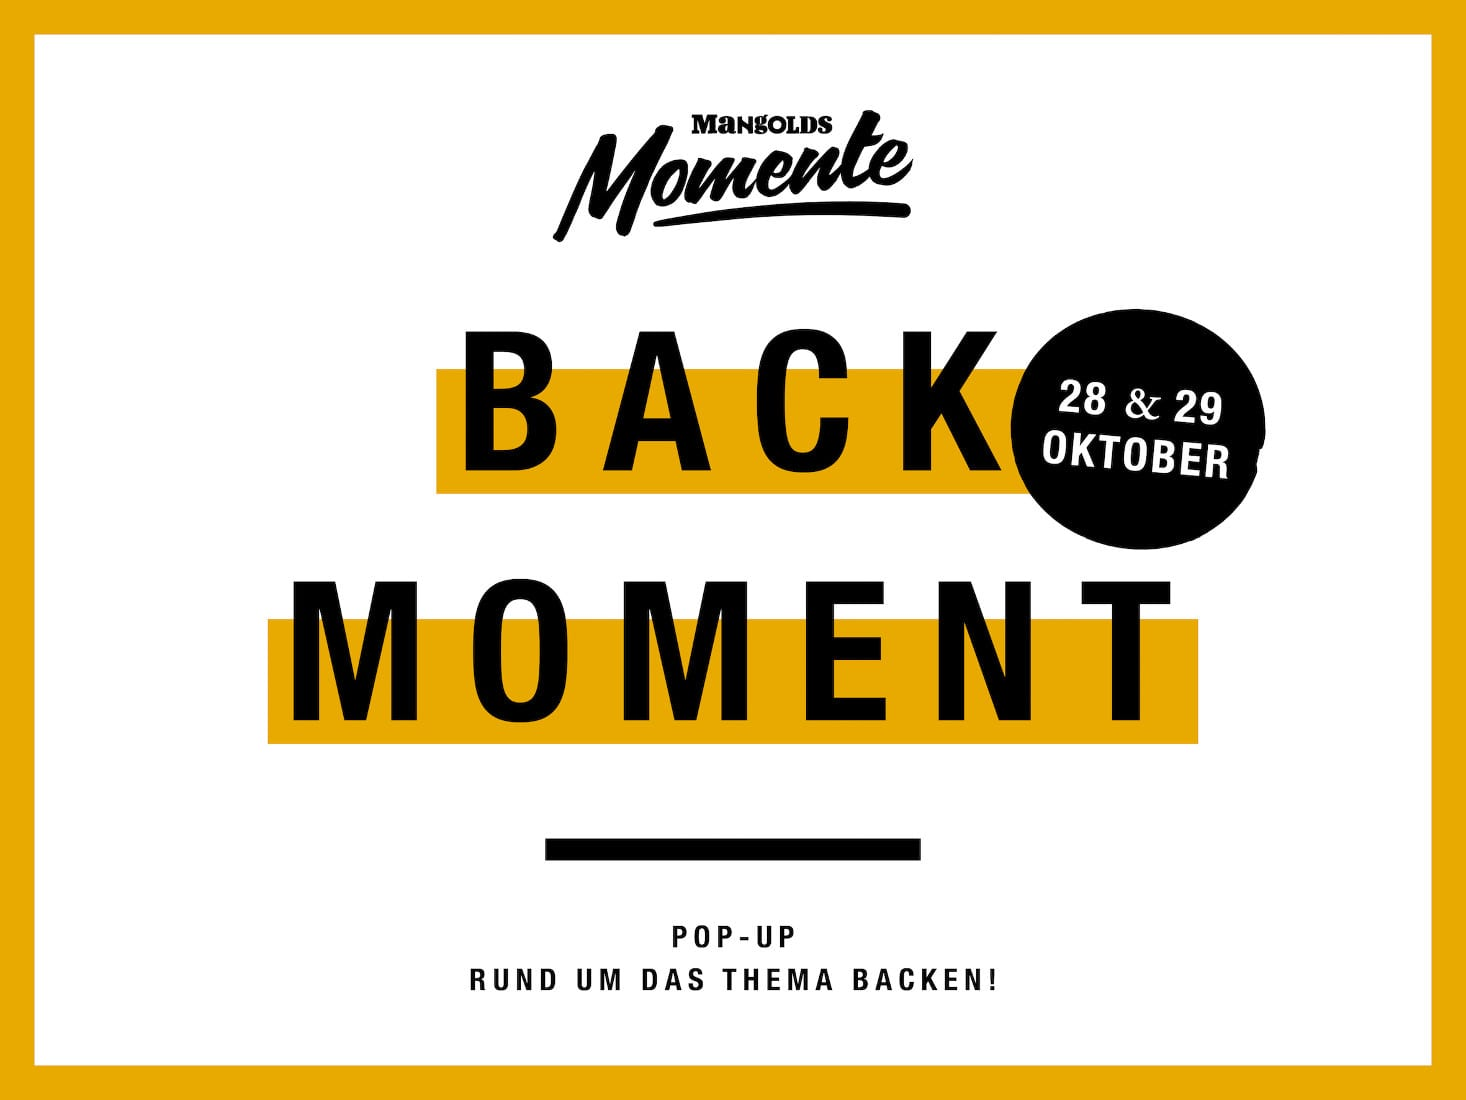 Back-Moment-Mangolds